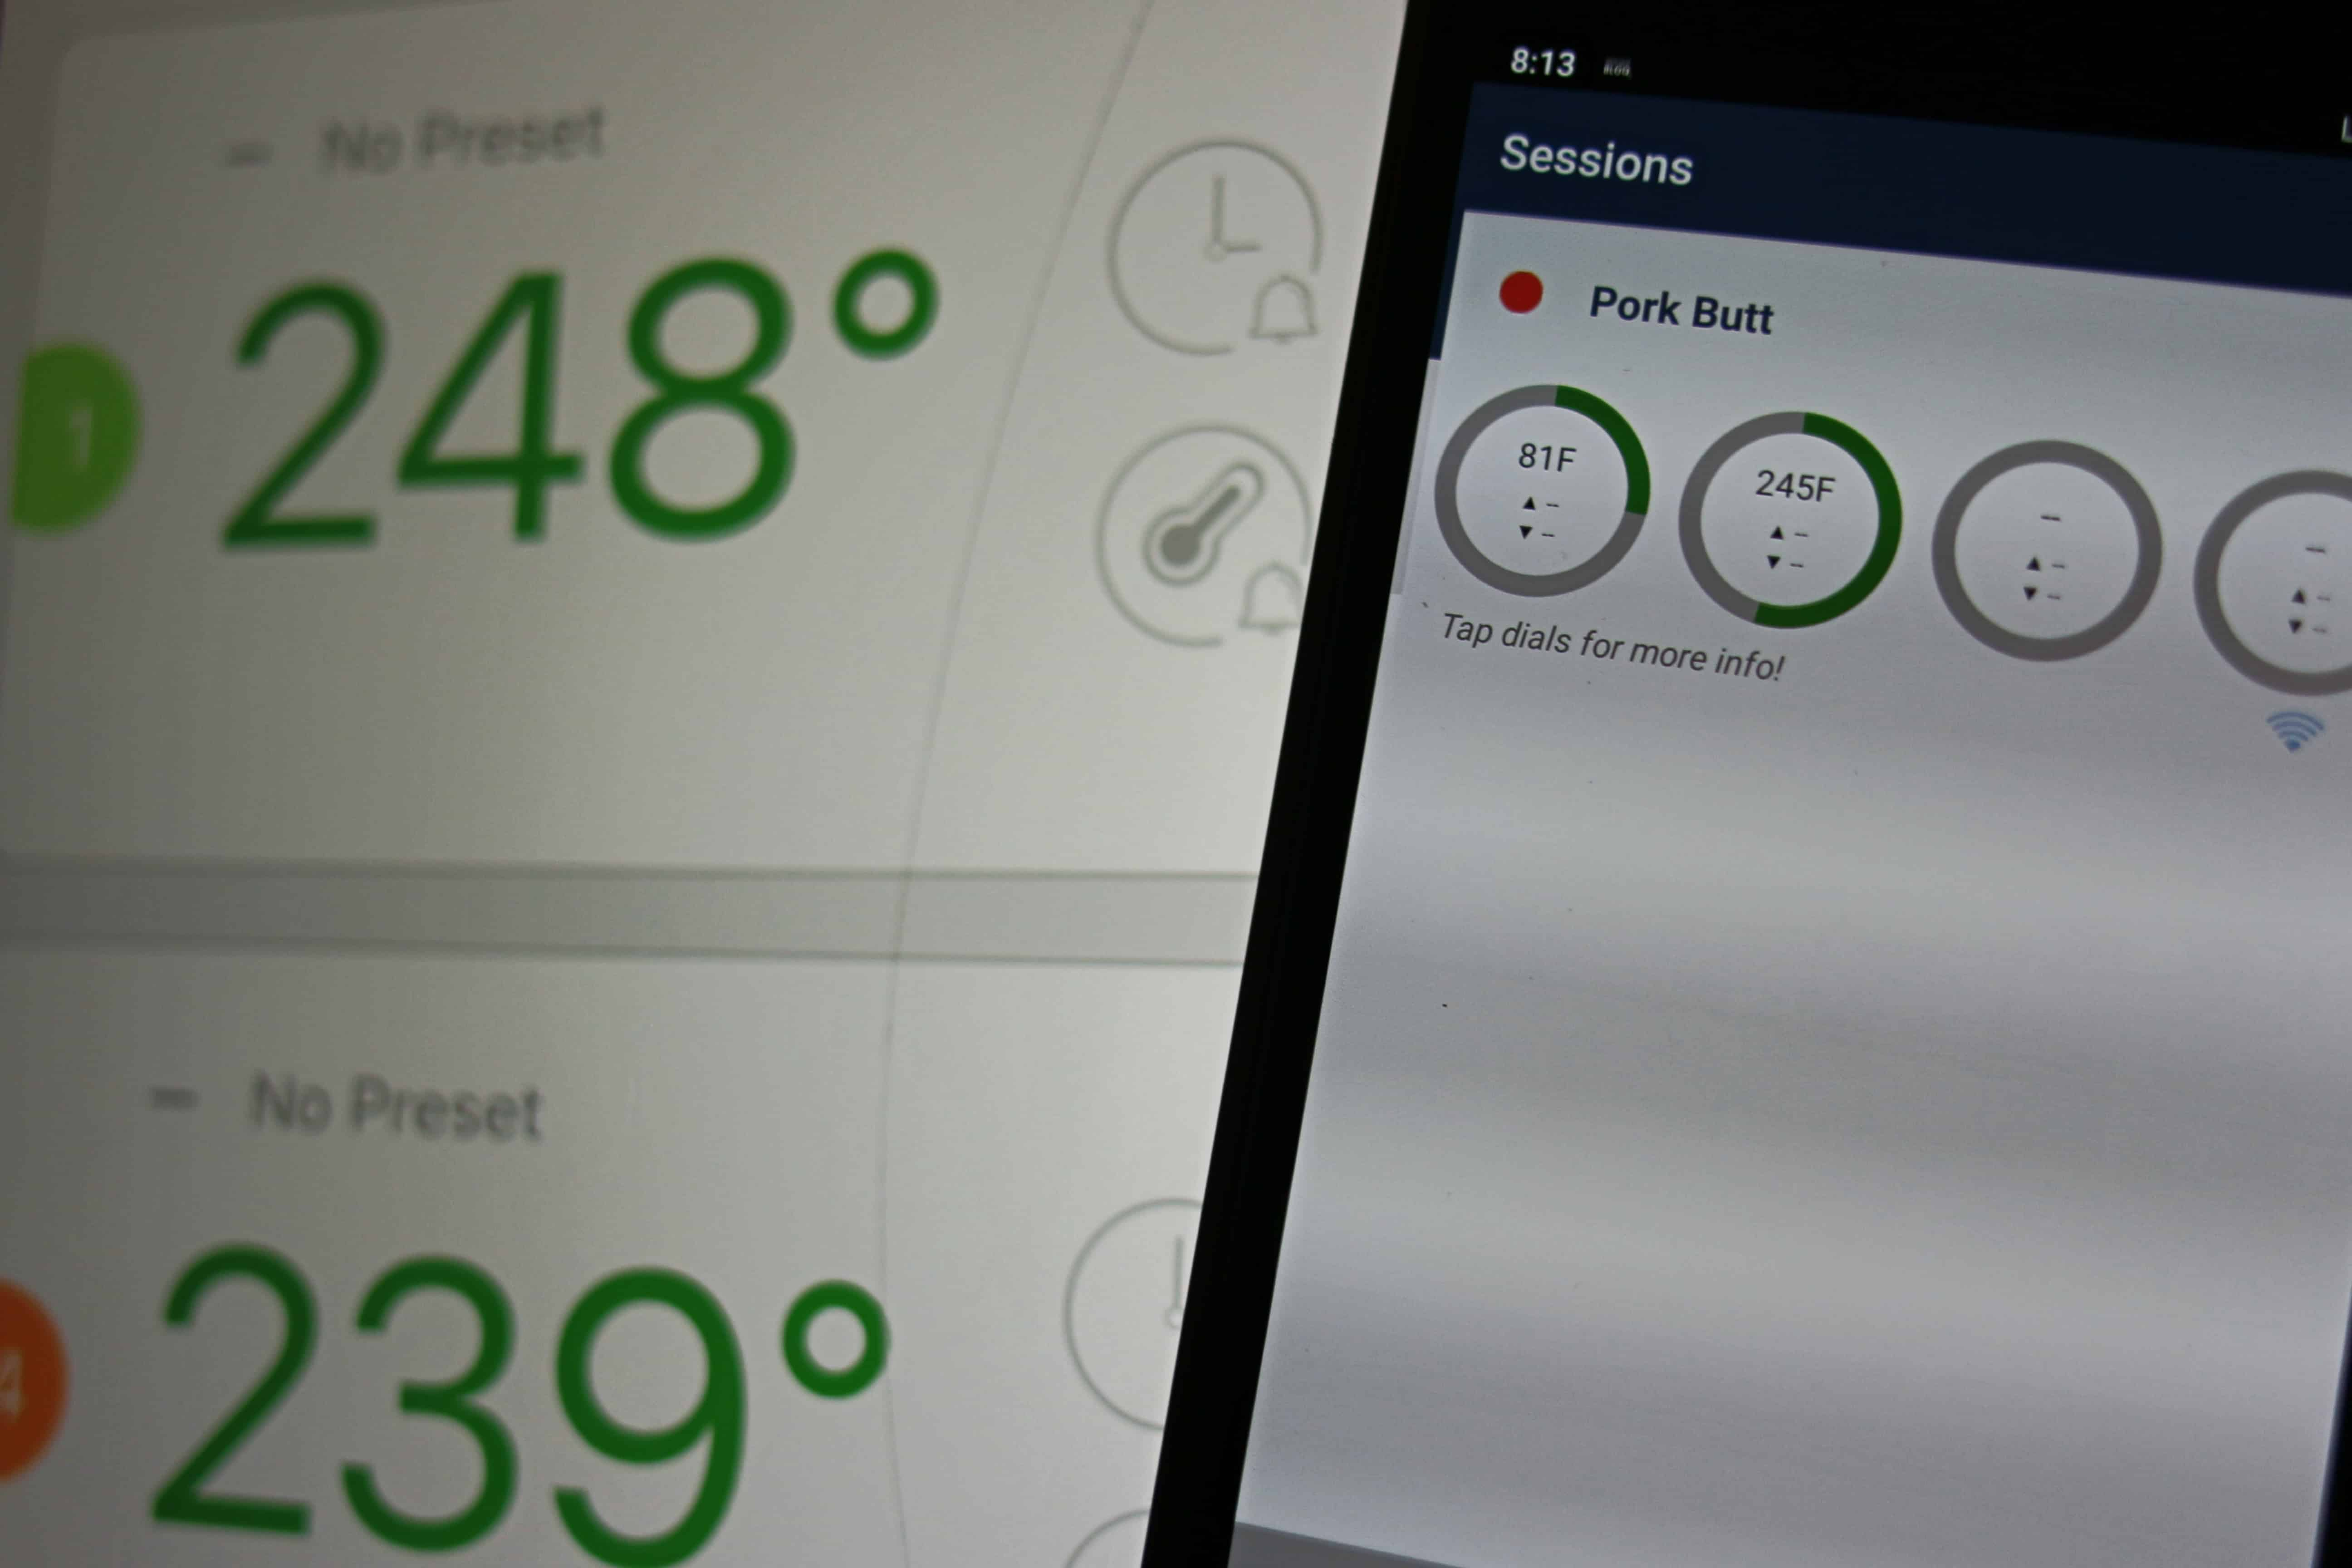 SmokeBloq Temperature reading versus other thermometers